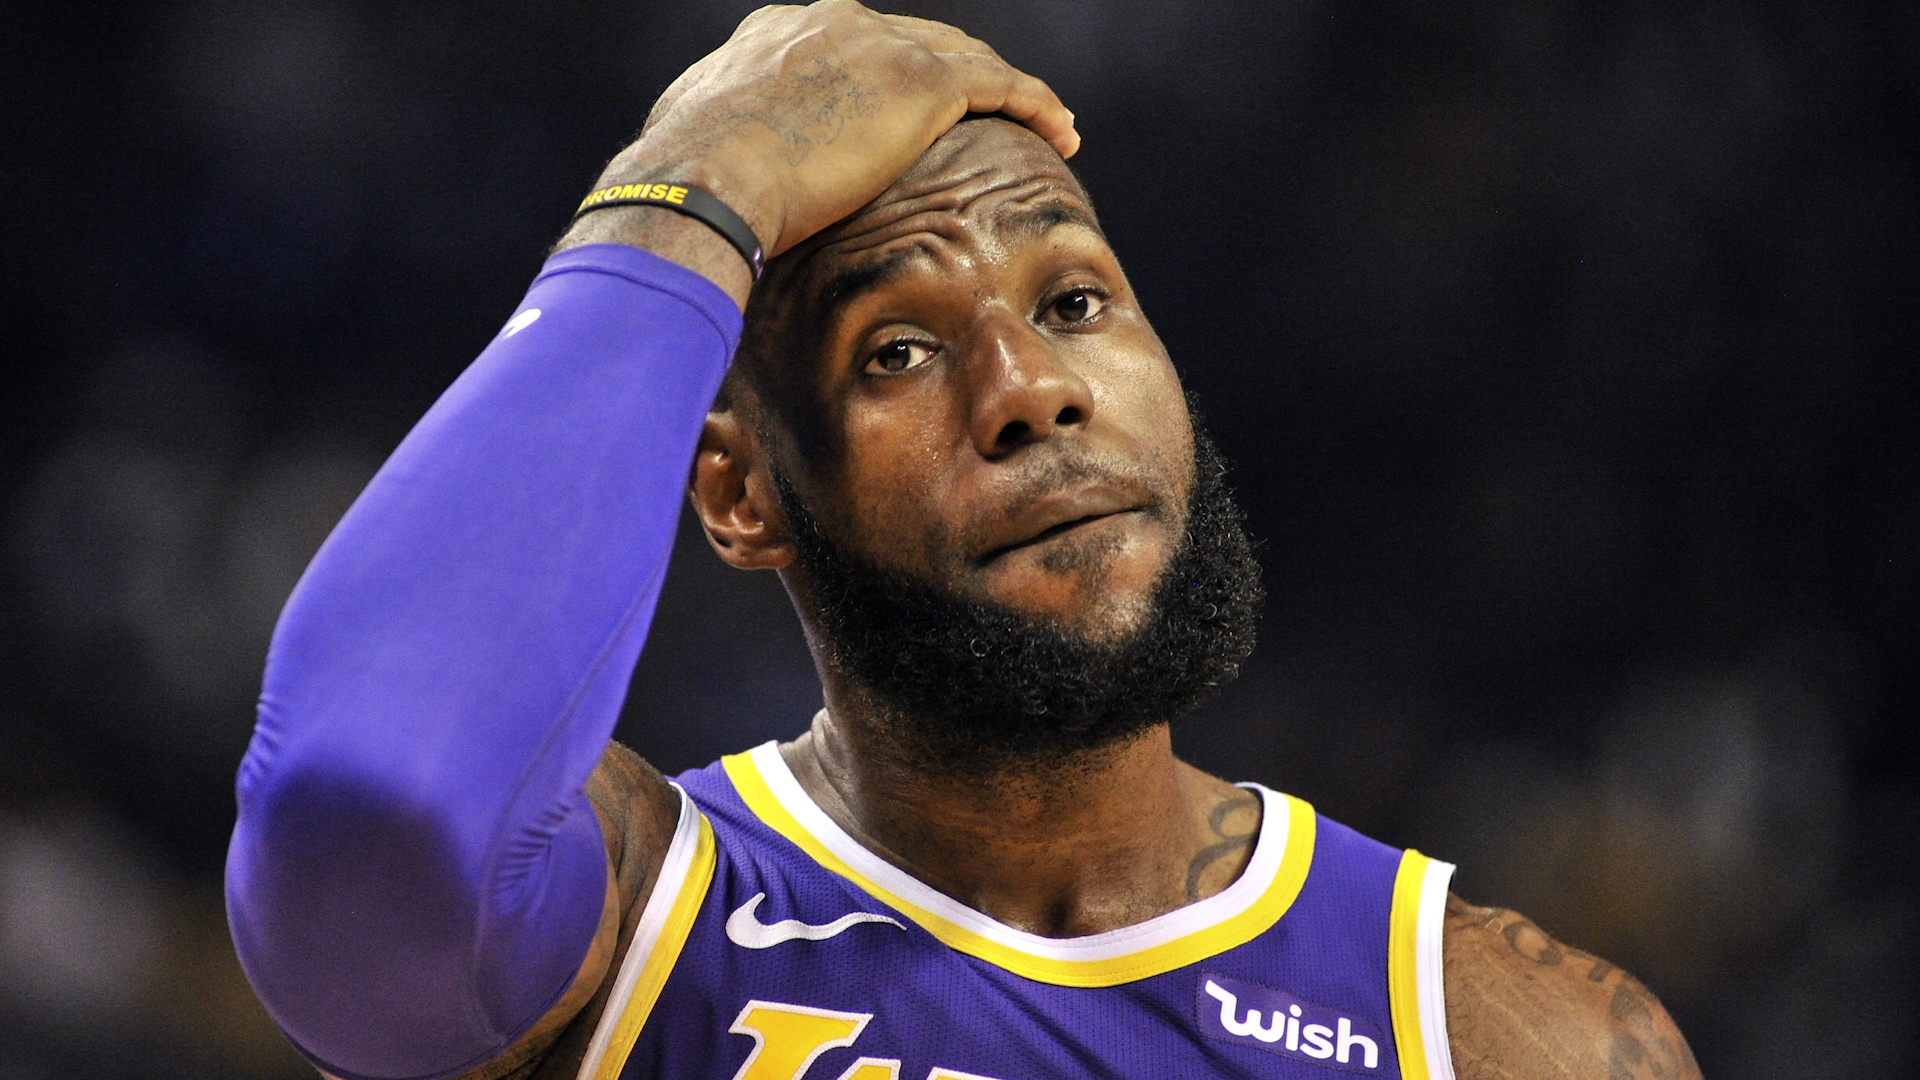 Lebron JamesLos Odds Angeles To Sports PlayoffsNbc Make Lakers Db9Y2IeWEH